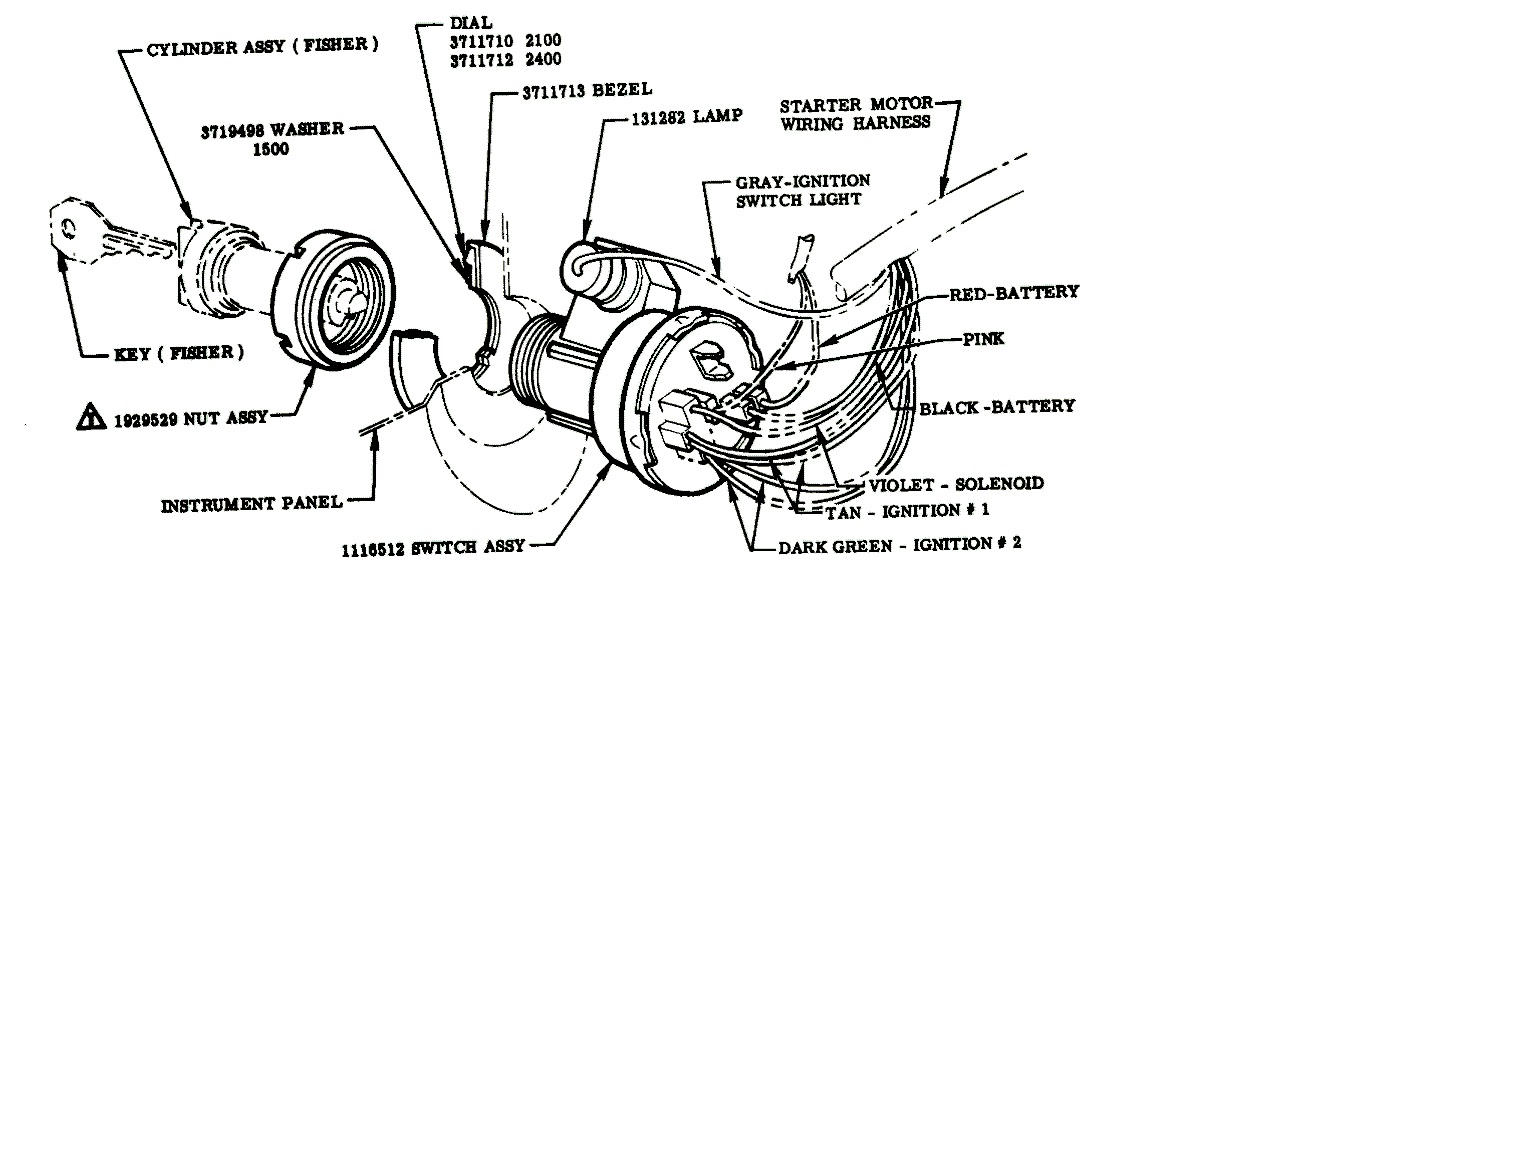 ford hei distributor wiring diagram ford ignition coil diagram 1971 ford f100 ignition switch wiring diagram at gsmx.co